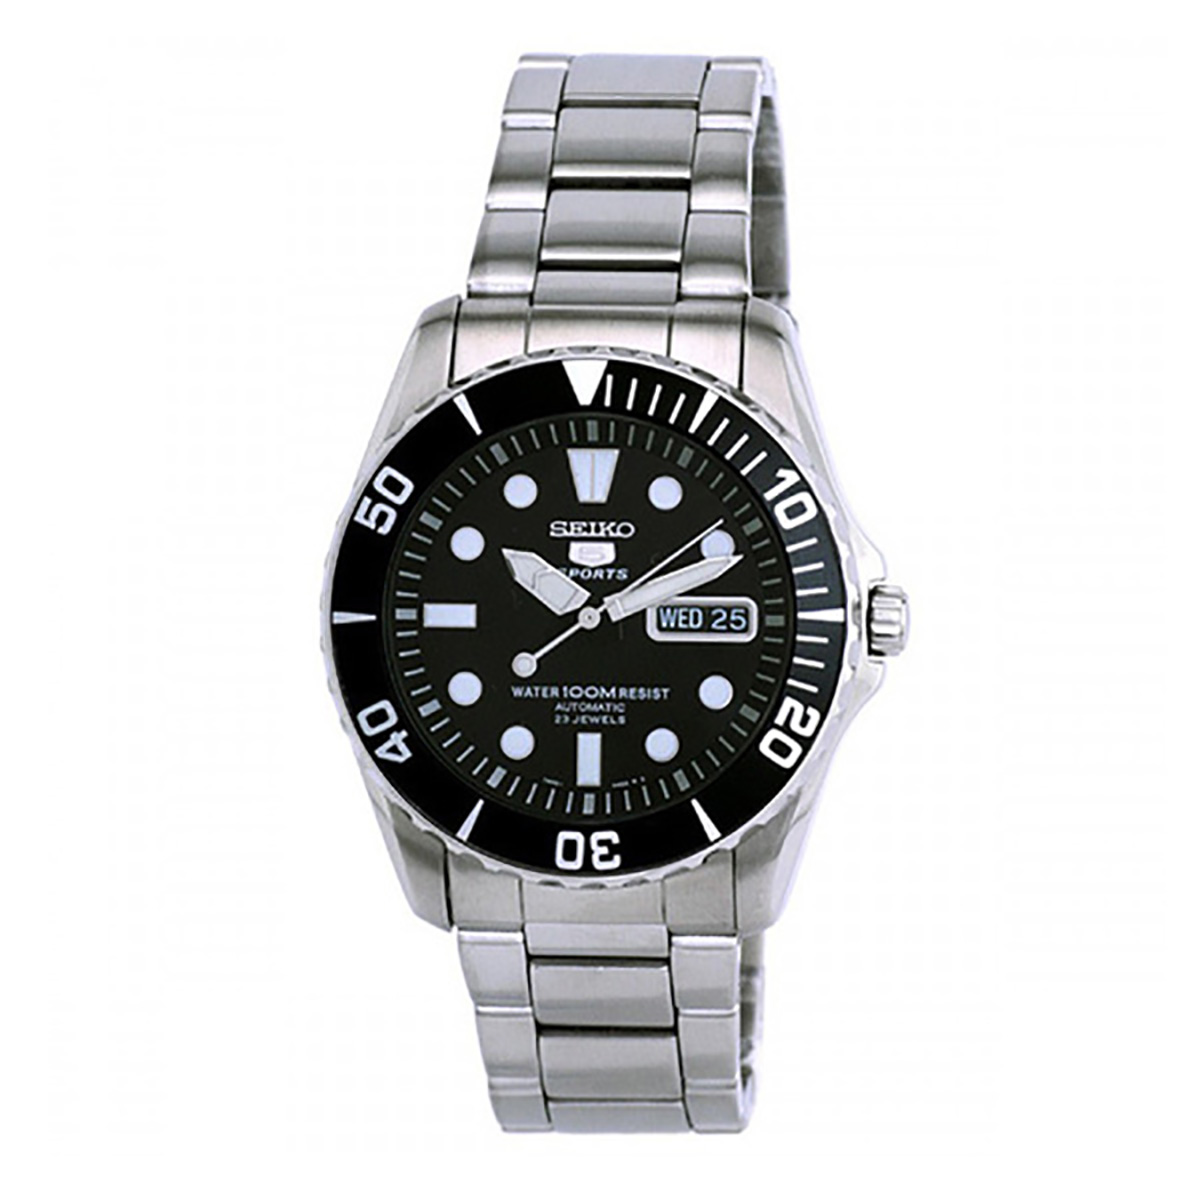 Seiko Analog Sport Mens Watch 5 SPORTS  SNZF17K1 - <span itemprop='availableAtOrFrom'>UK, United Kingdom</span> - 1. Refund Policy : Refund will only be made if there is a manufacturing fault or DOA or we made a mistake. 2. Watches that have been resized, damaged, or otherwise altered after delivery will  - UK, United Kingdom